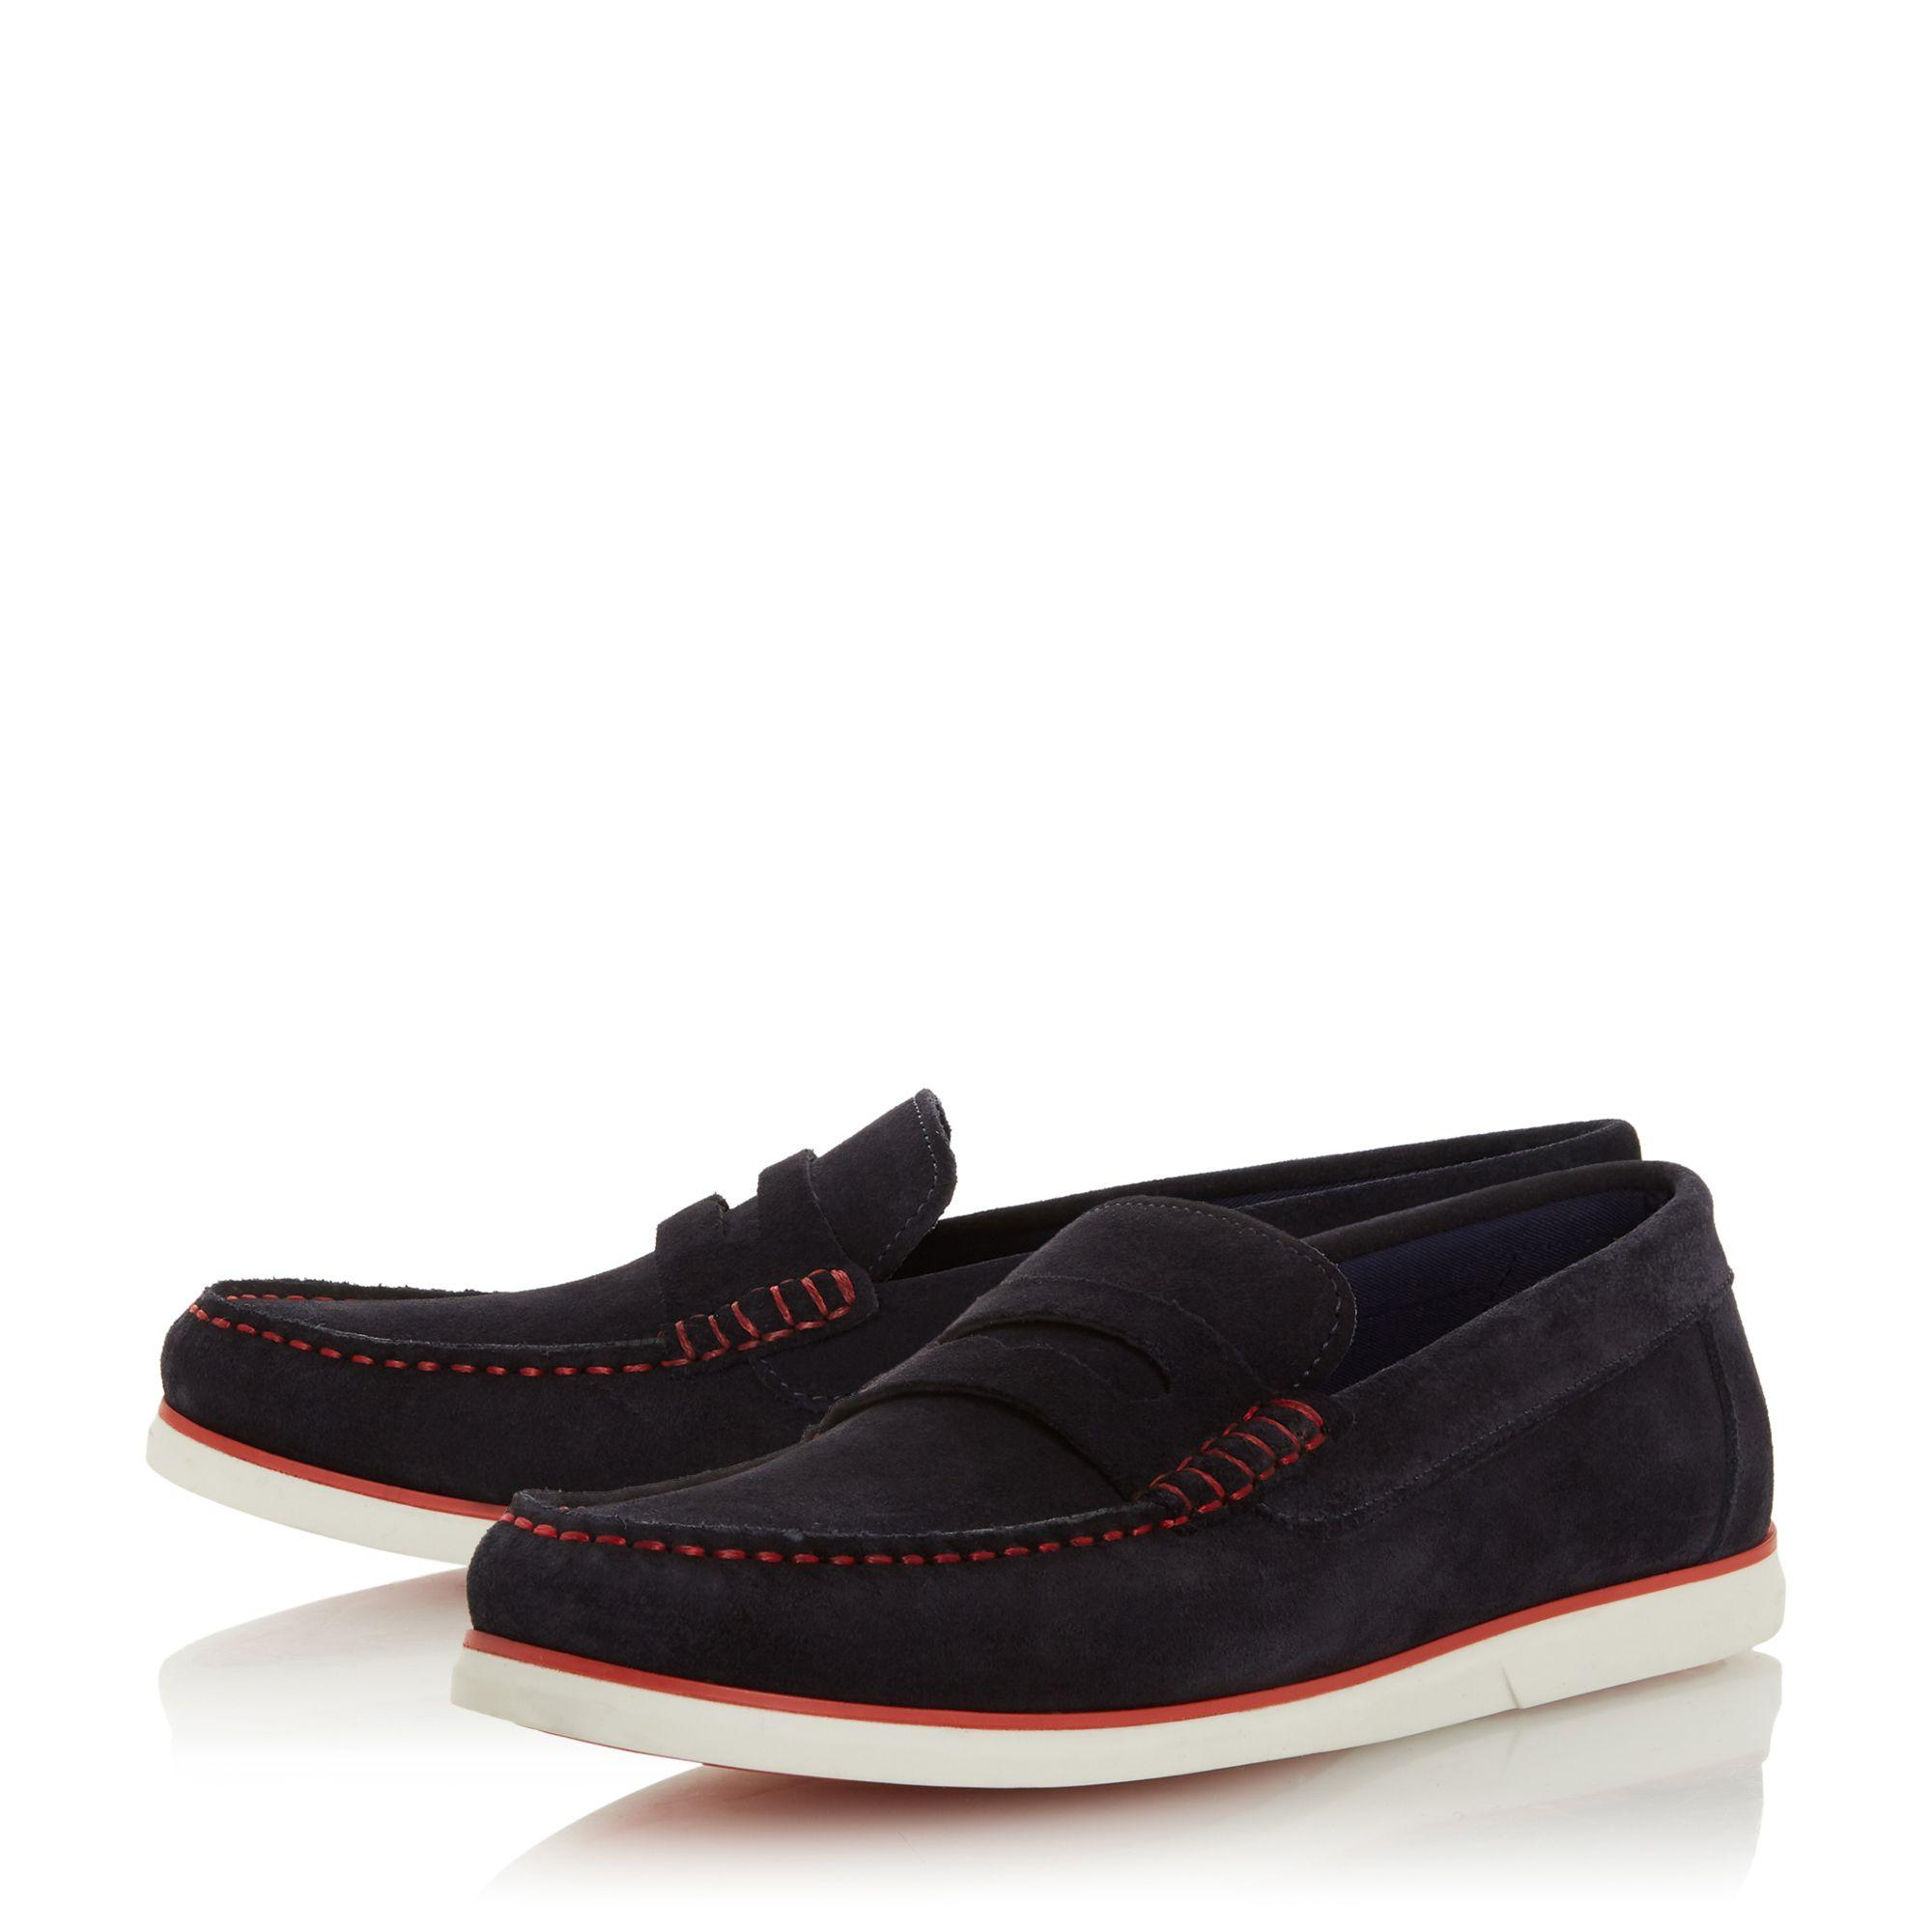 0c1596fdf72 Dune Navy  belwood  Suede Penny Loafers in Blue for Men - Lyst